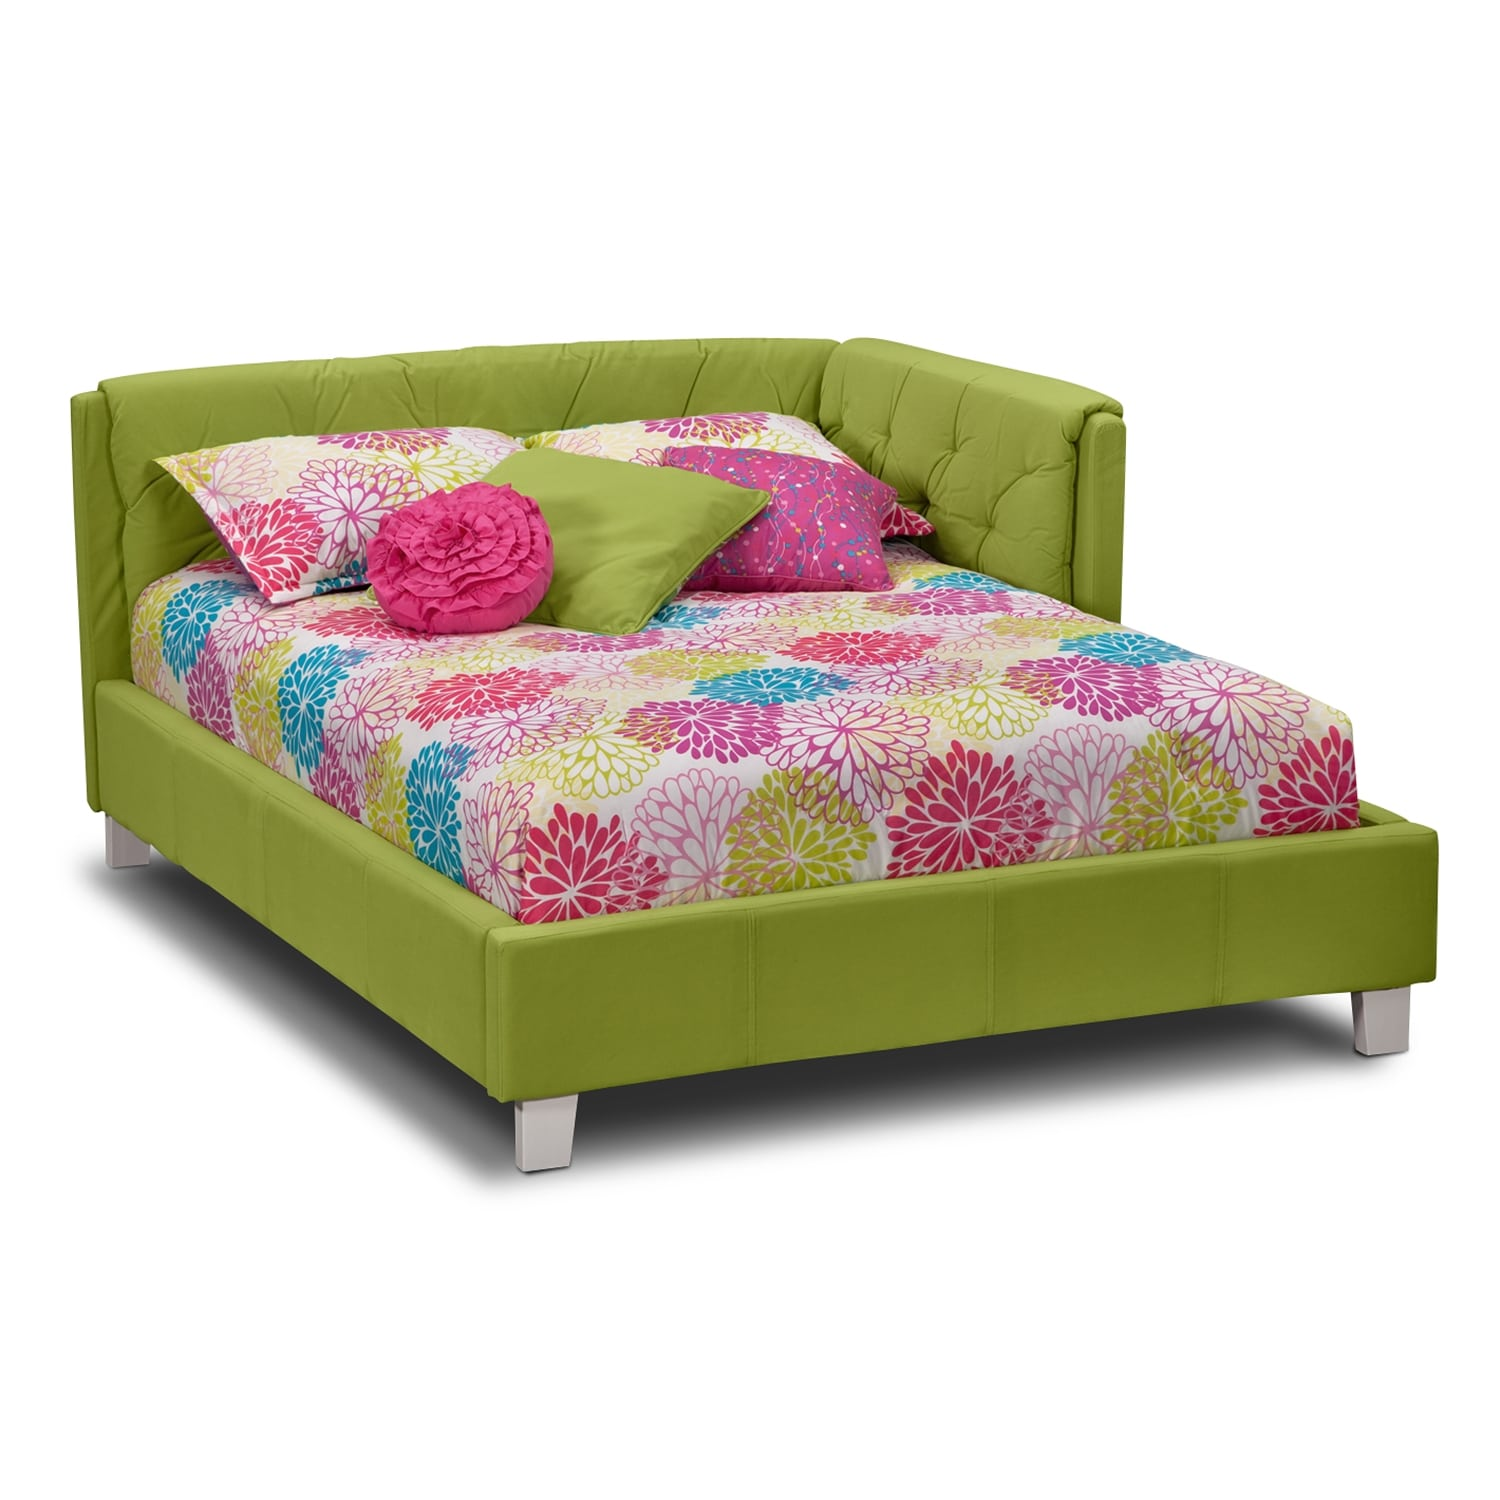 Jordan Full Corner Bed - Green